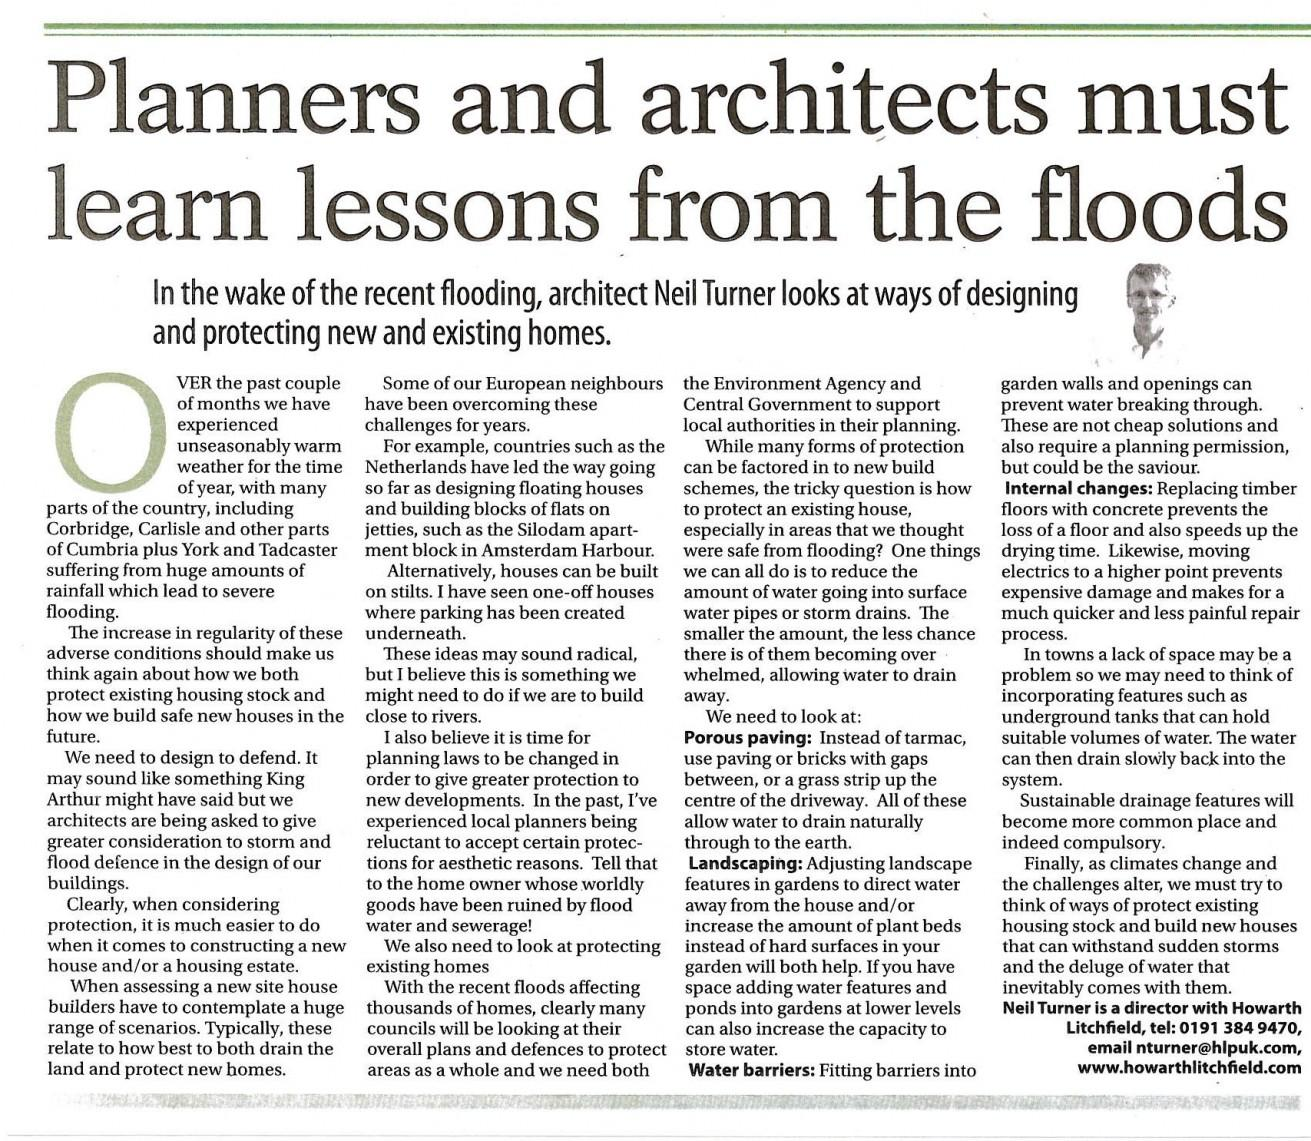 Article printed in The Journal Saturday 16 January 2016